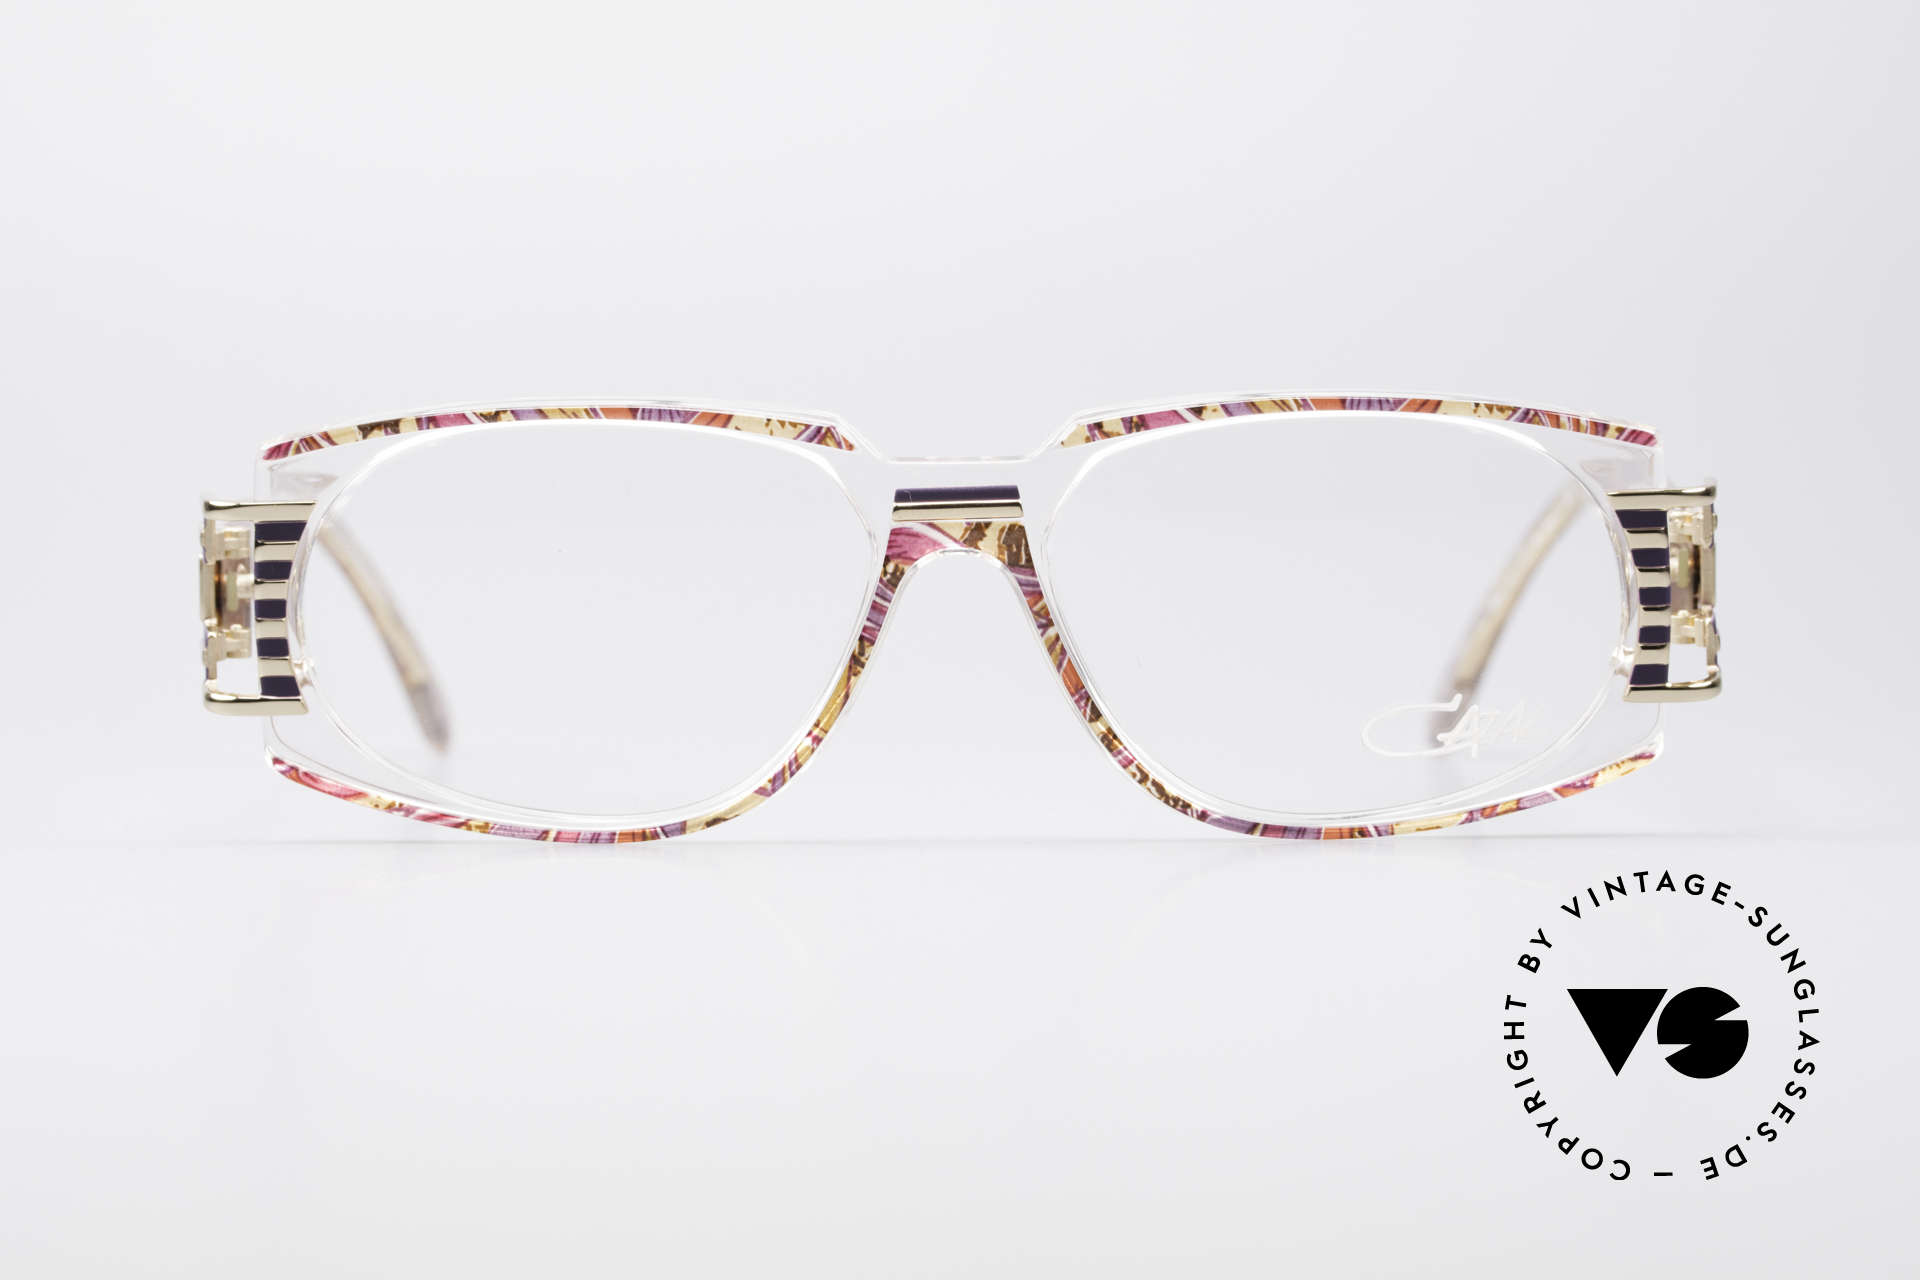 Cazal 372 Rare HipHop Vintage Eyeglasses, terrific / stunning color concept: raspberry-lilac patterned, Made for Men and Women